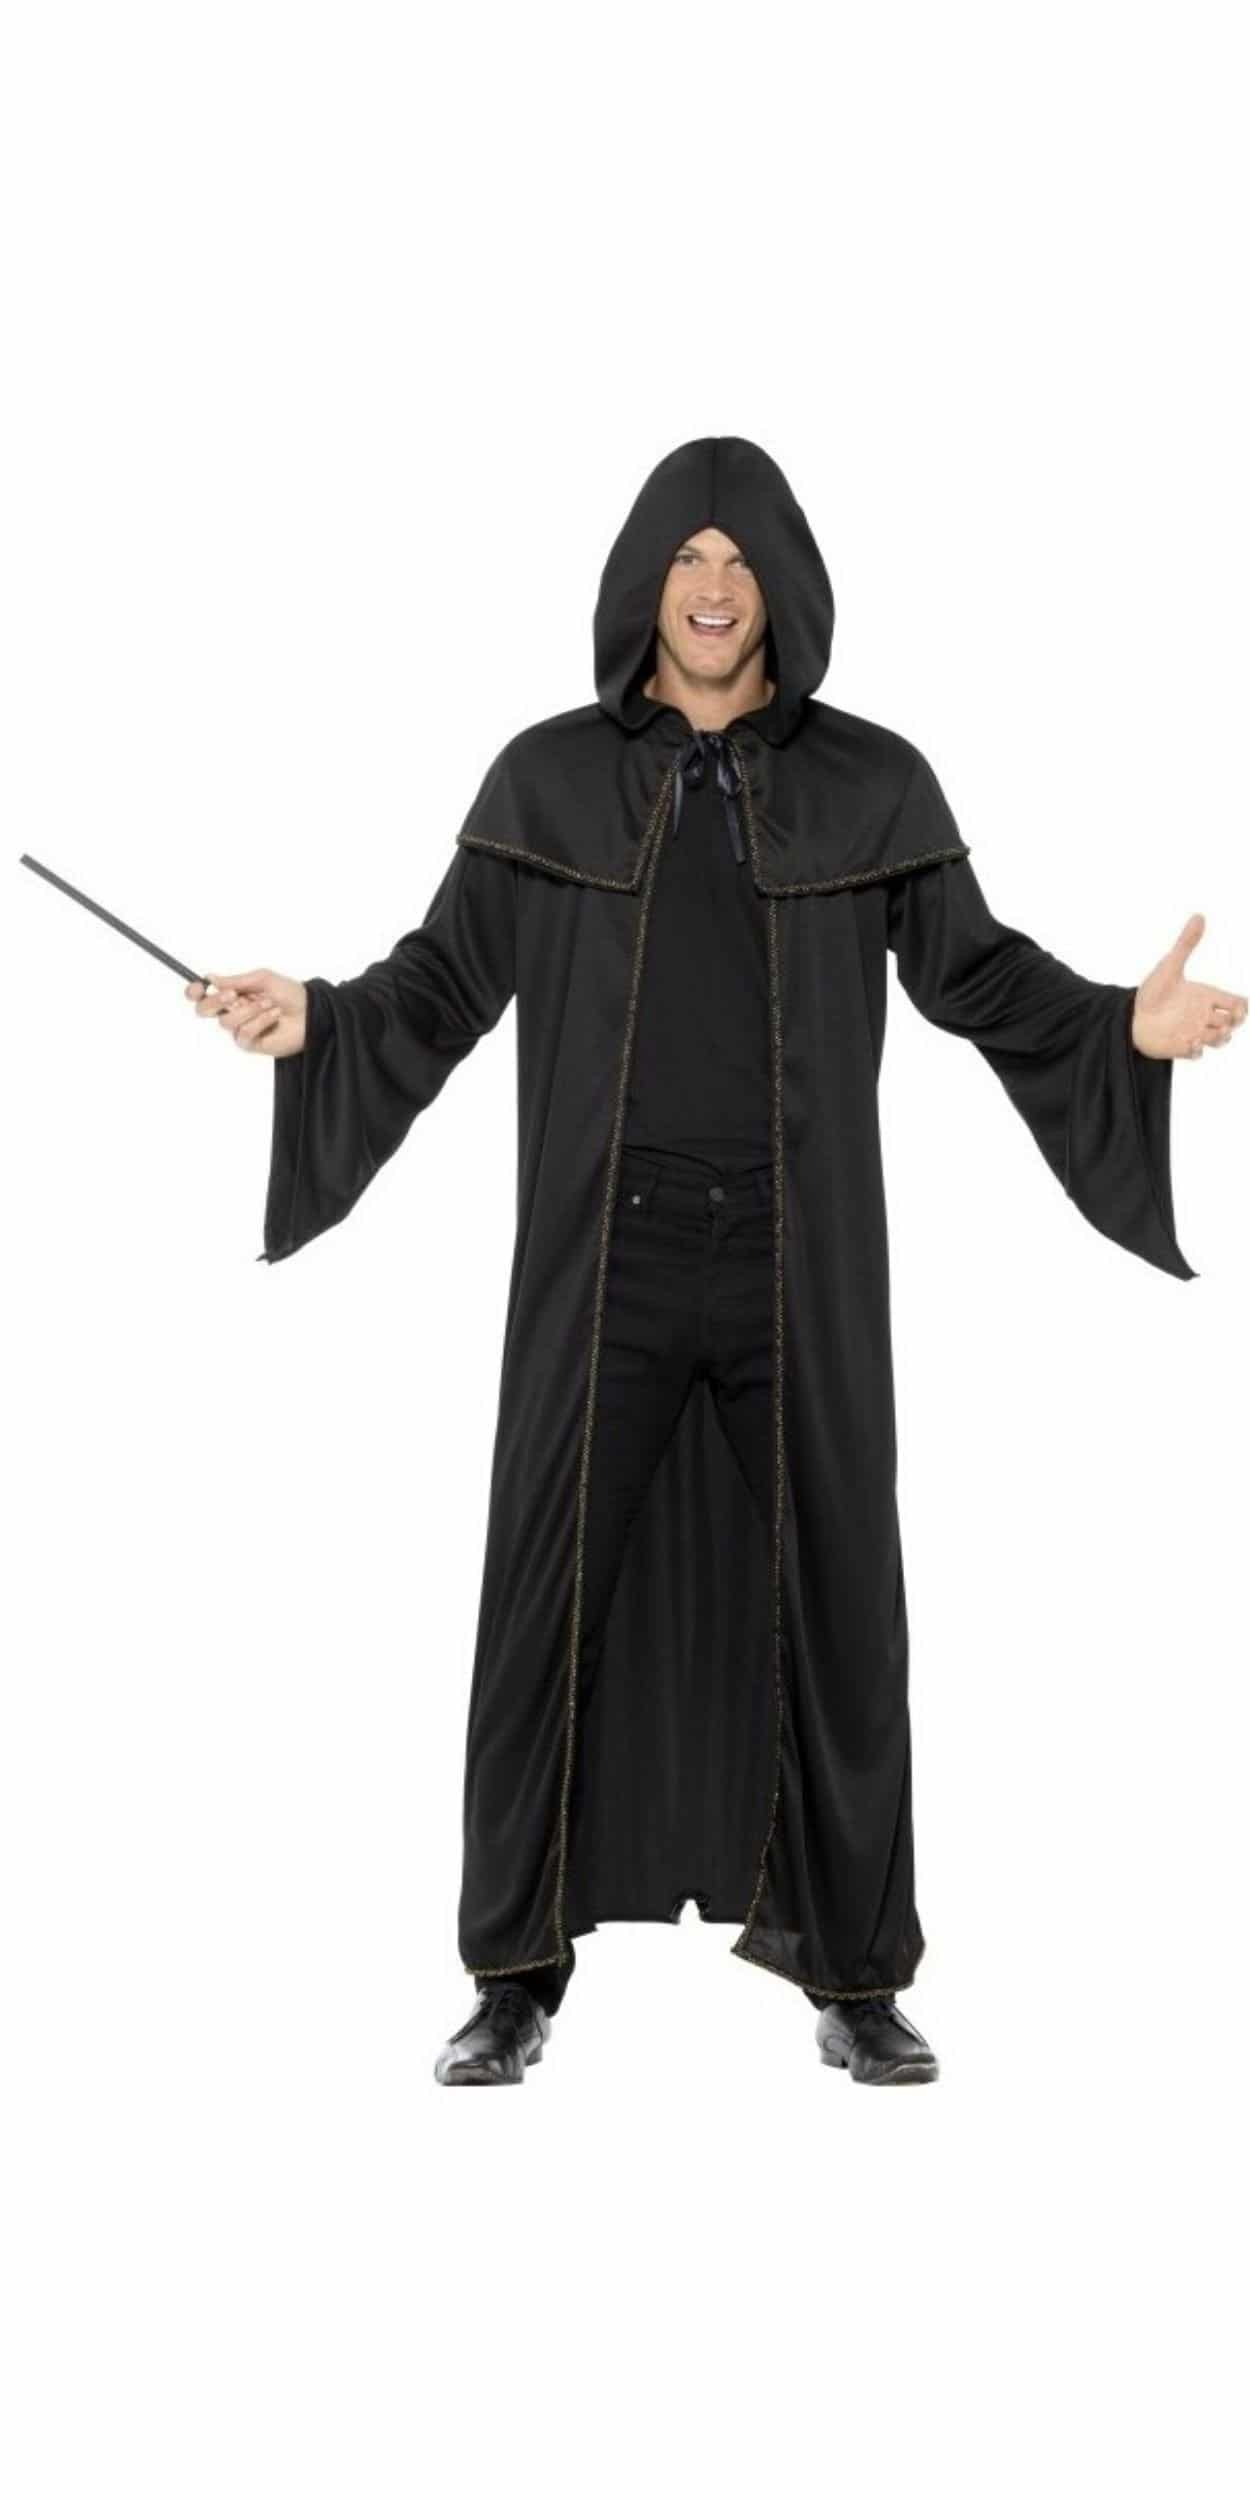 Man in Wizard Party Costume